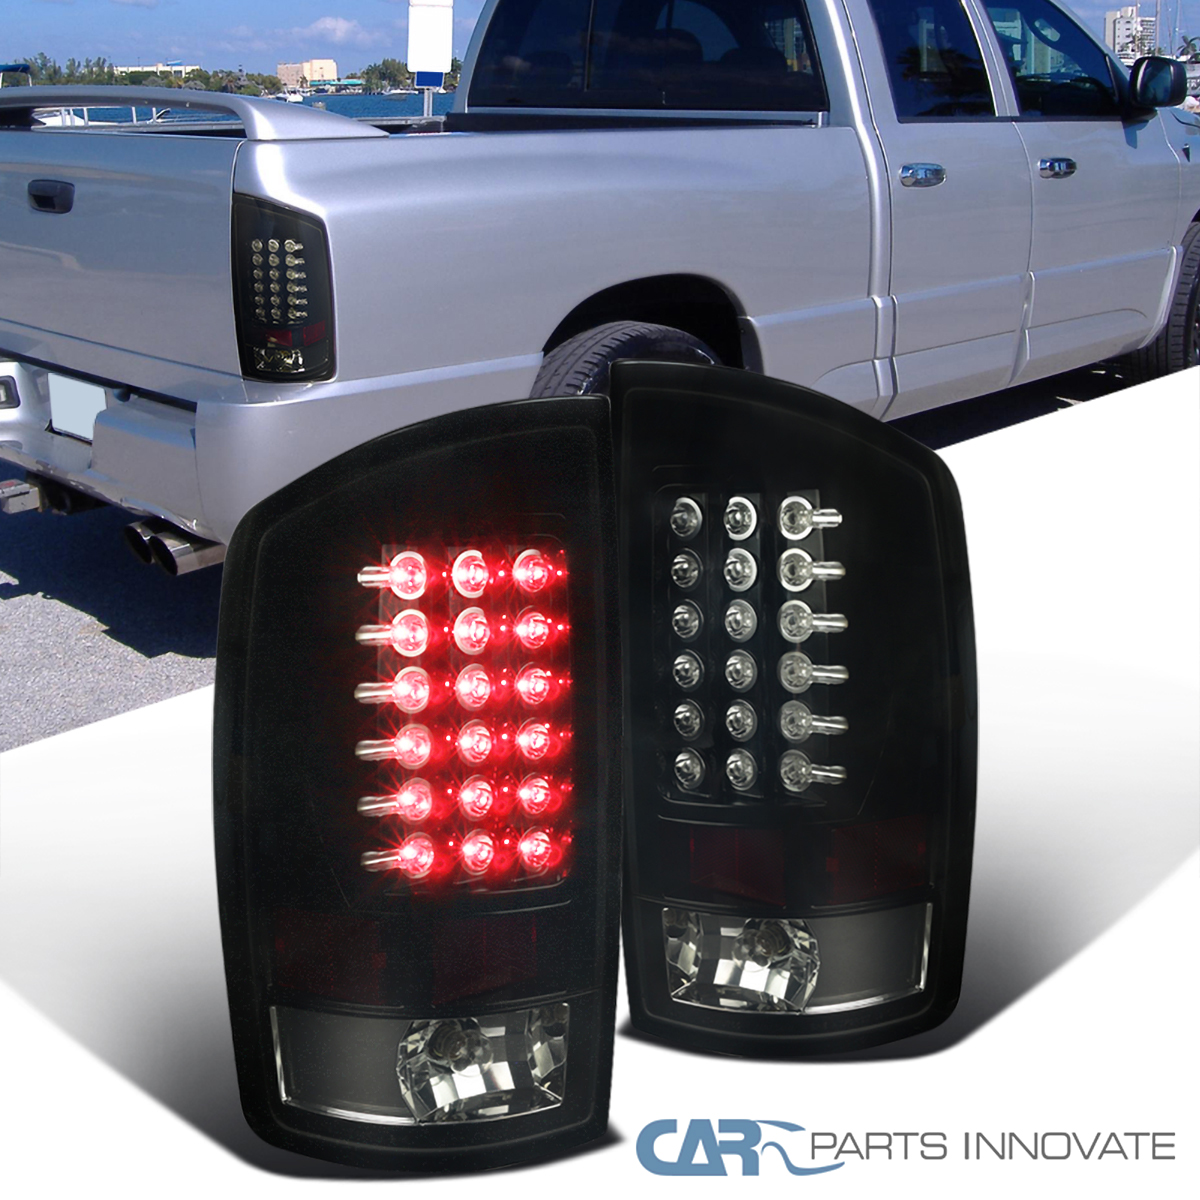 For 2003 04 05 06 07 08 Dodge Ram 1500 2500 3500 Black Gloss Color Gas Cap Cover